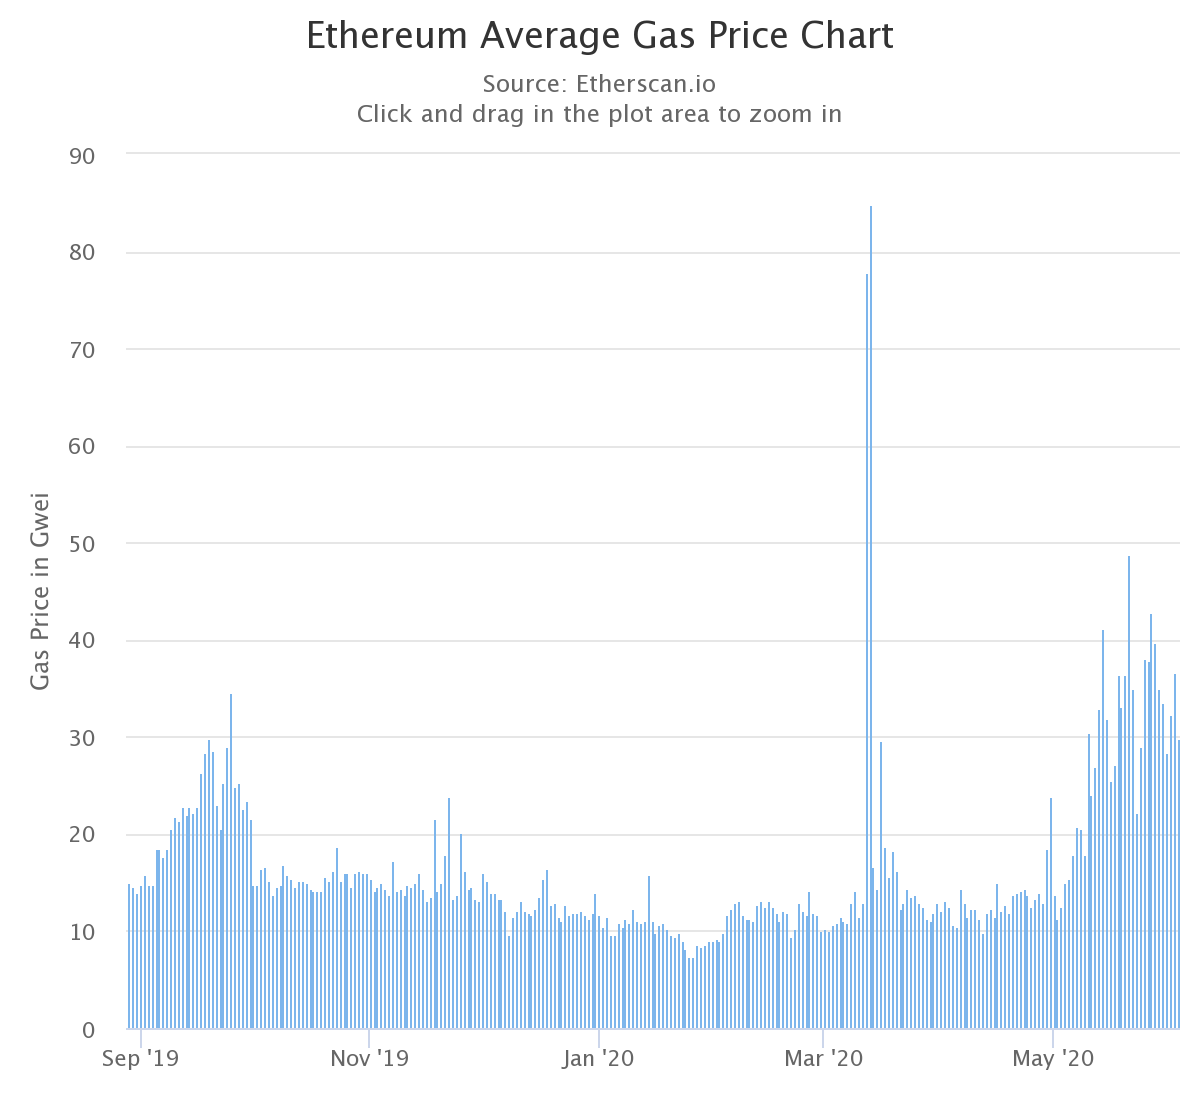 Ethereum Average Gas Price Chart